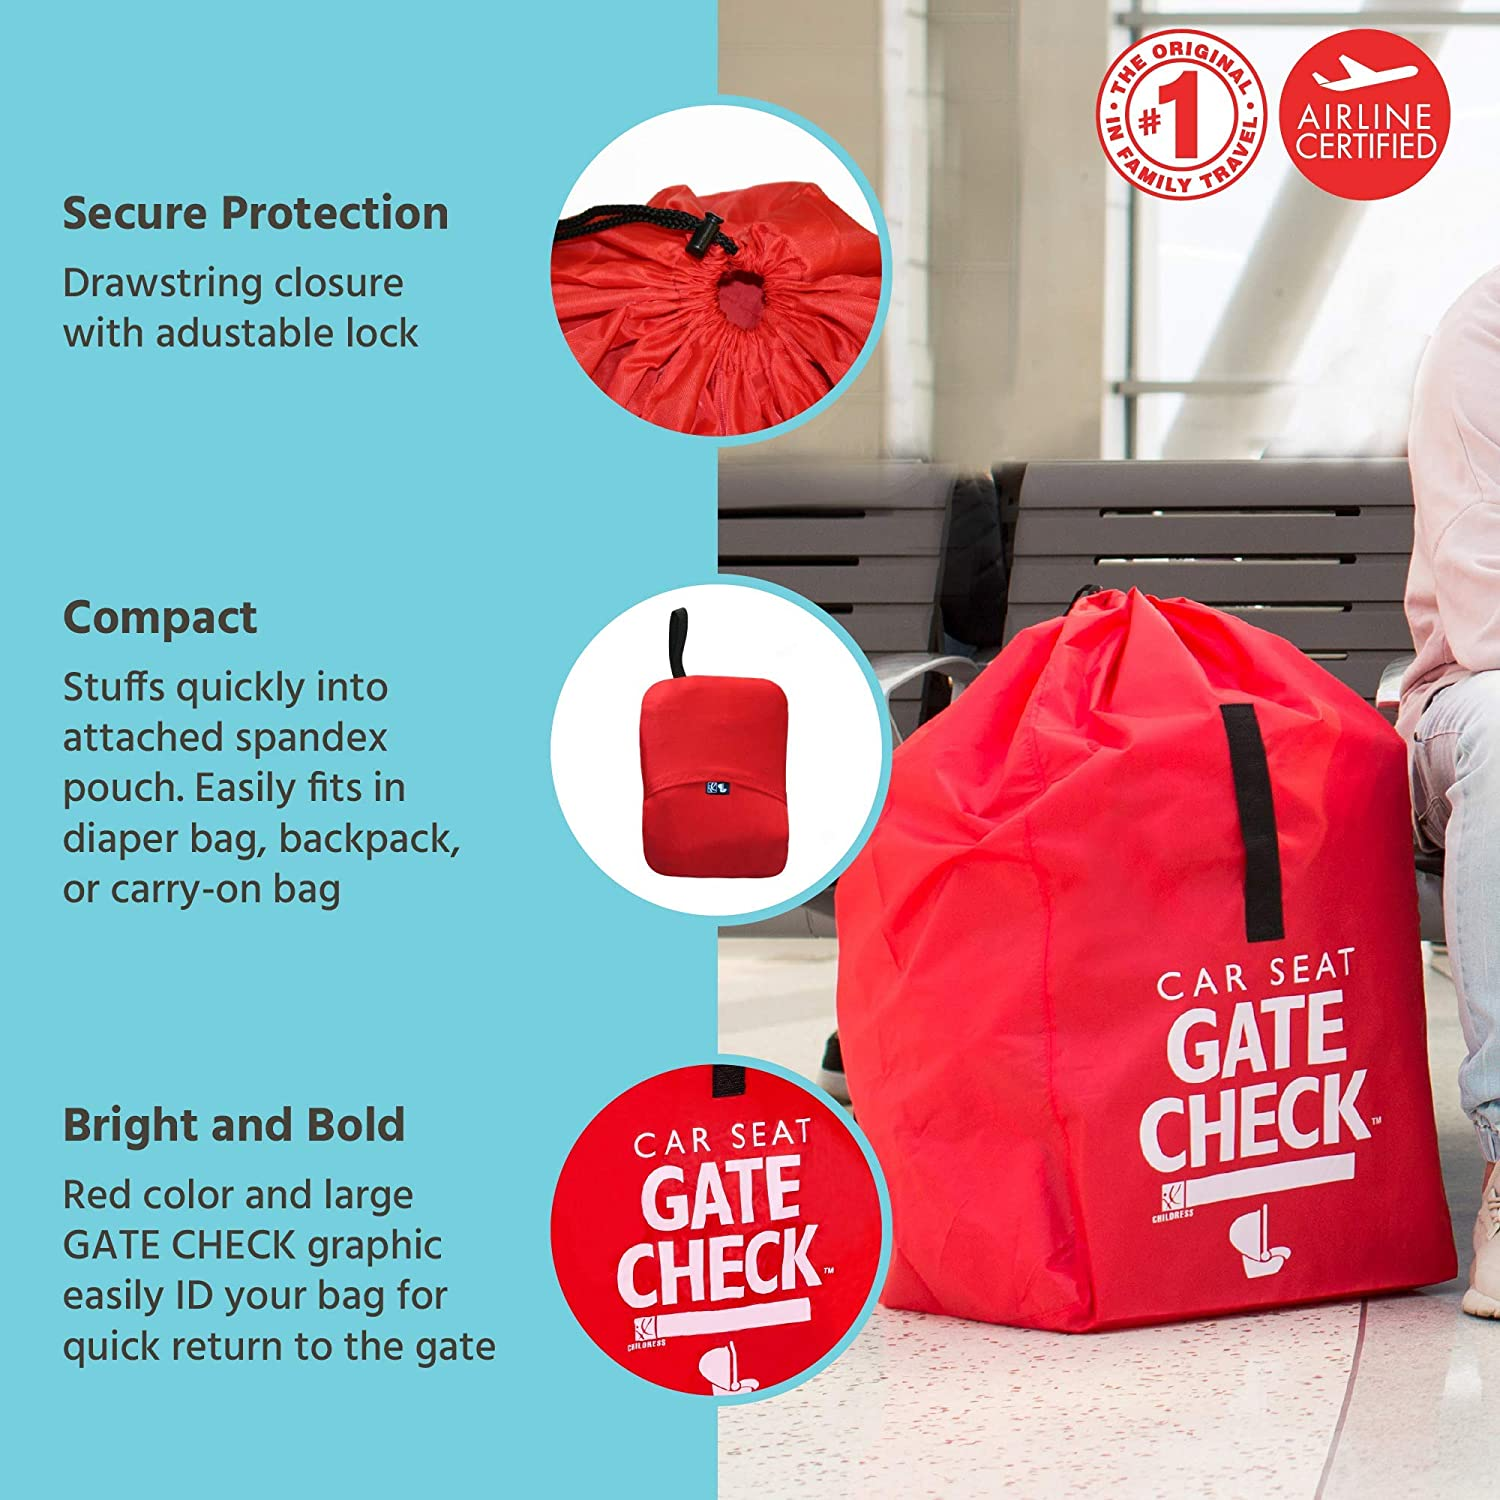 J.L Infant carriers /& Booster Seats Fits Convertible Car Seats Red Childress Gate Check Bag for Car Seats Air Travel Bag